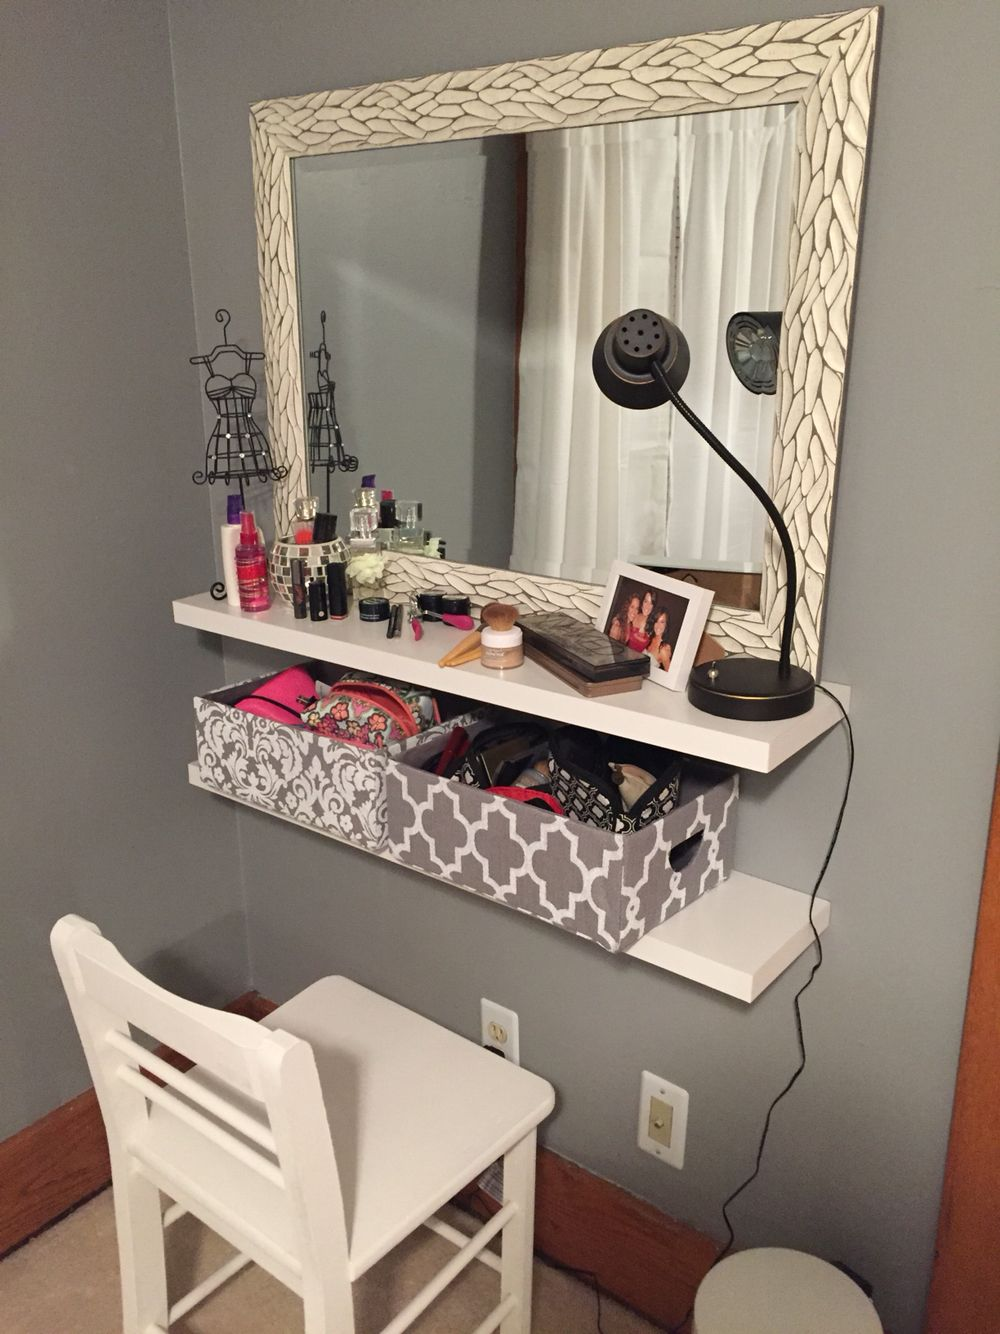 My diy makeup vanity future home pinterest diy makeup vanity